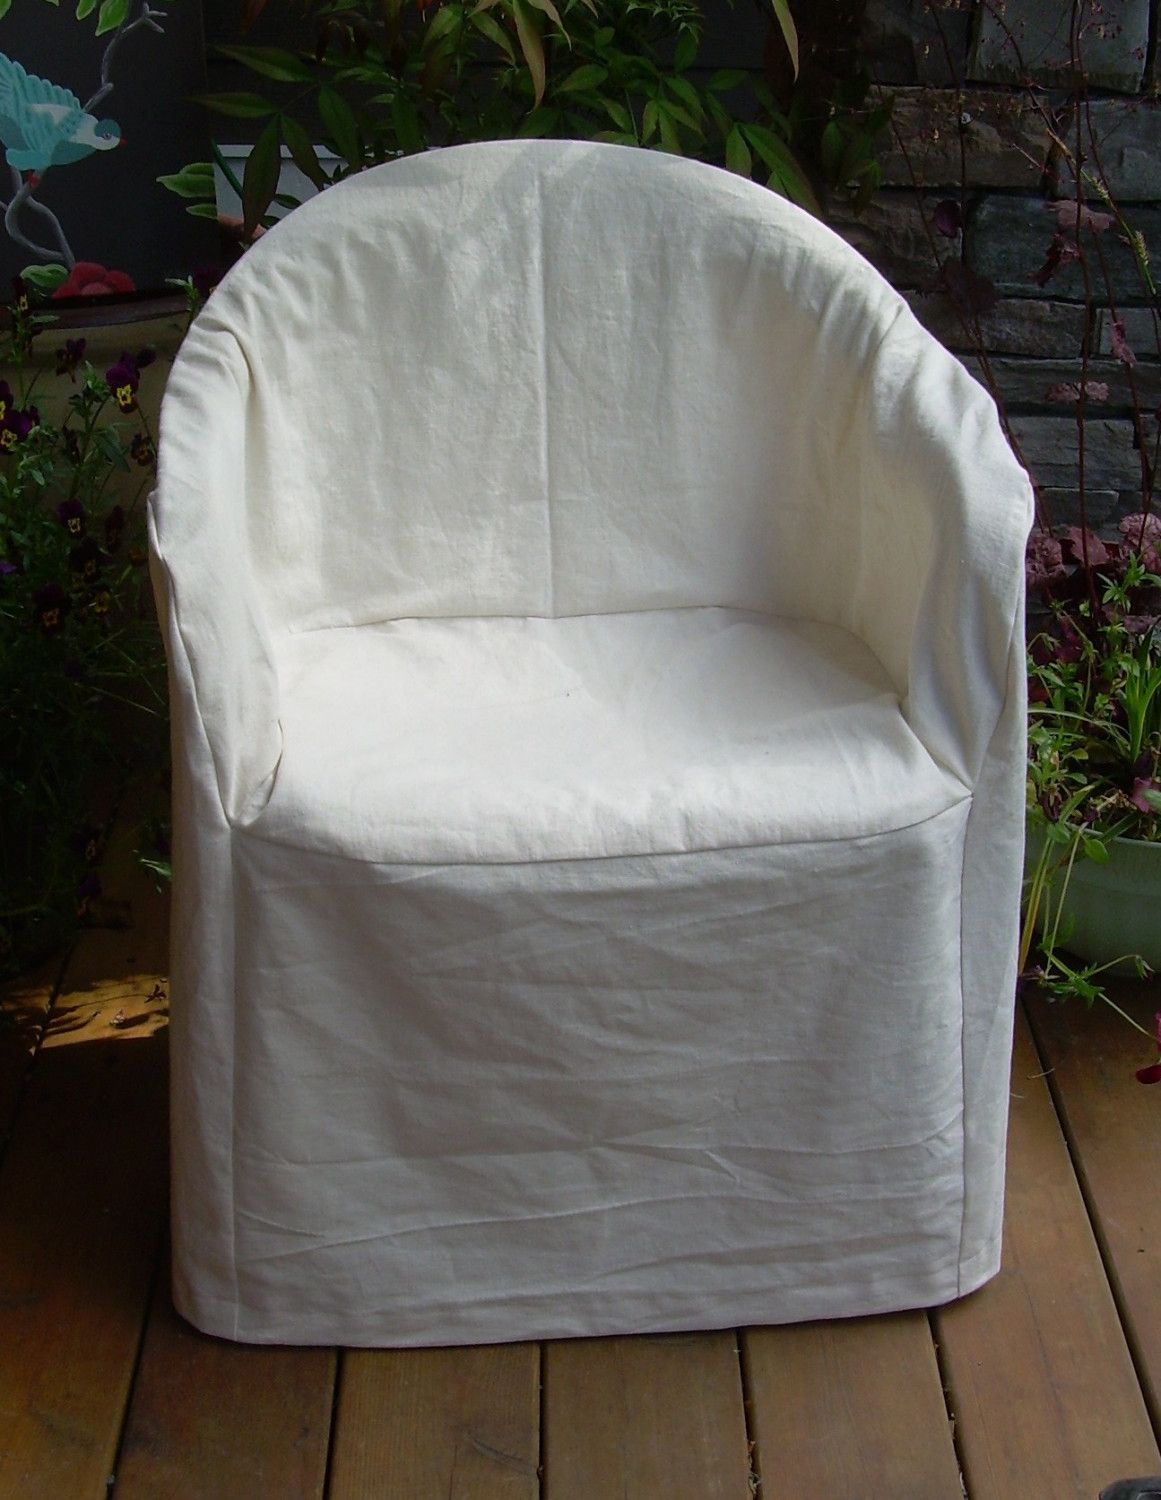 Hemp Cotton Slipcover For Outdoor Plastic Chair Crafts